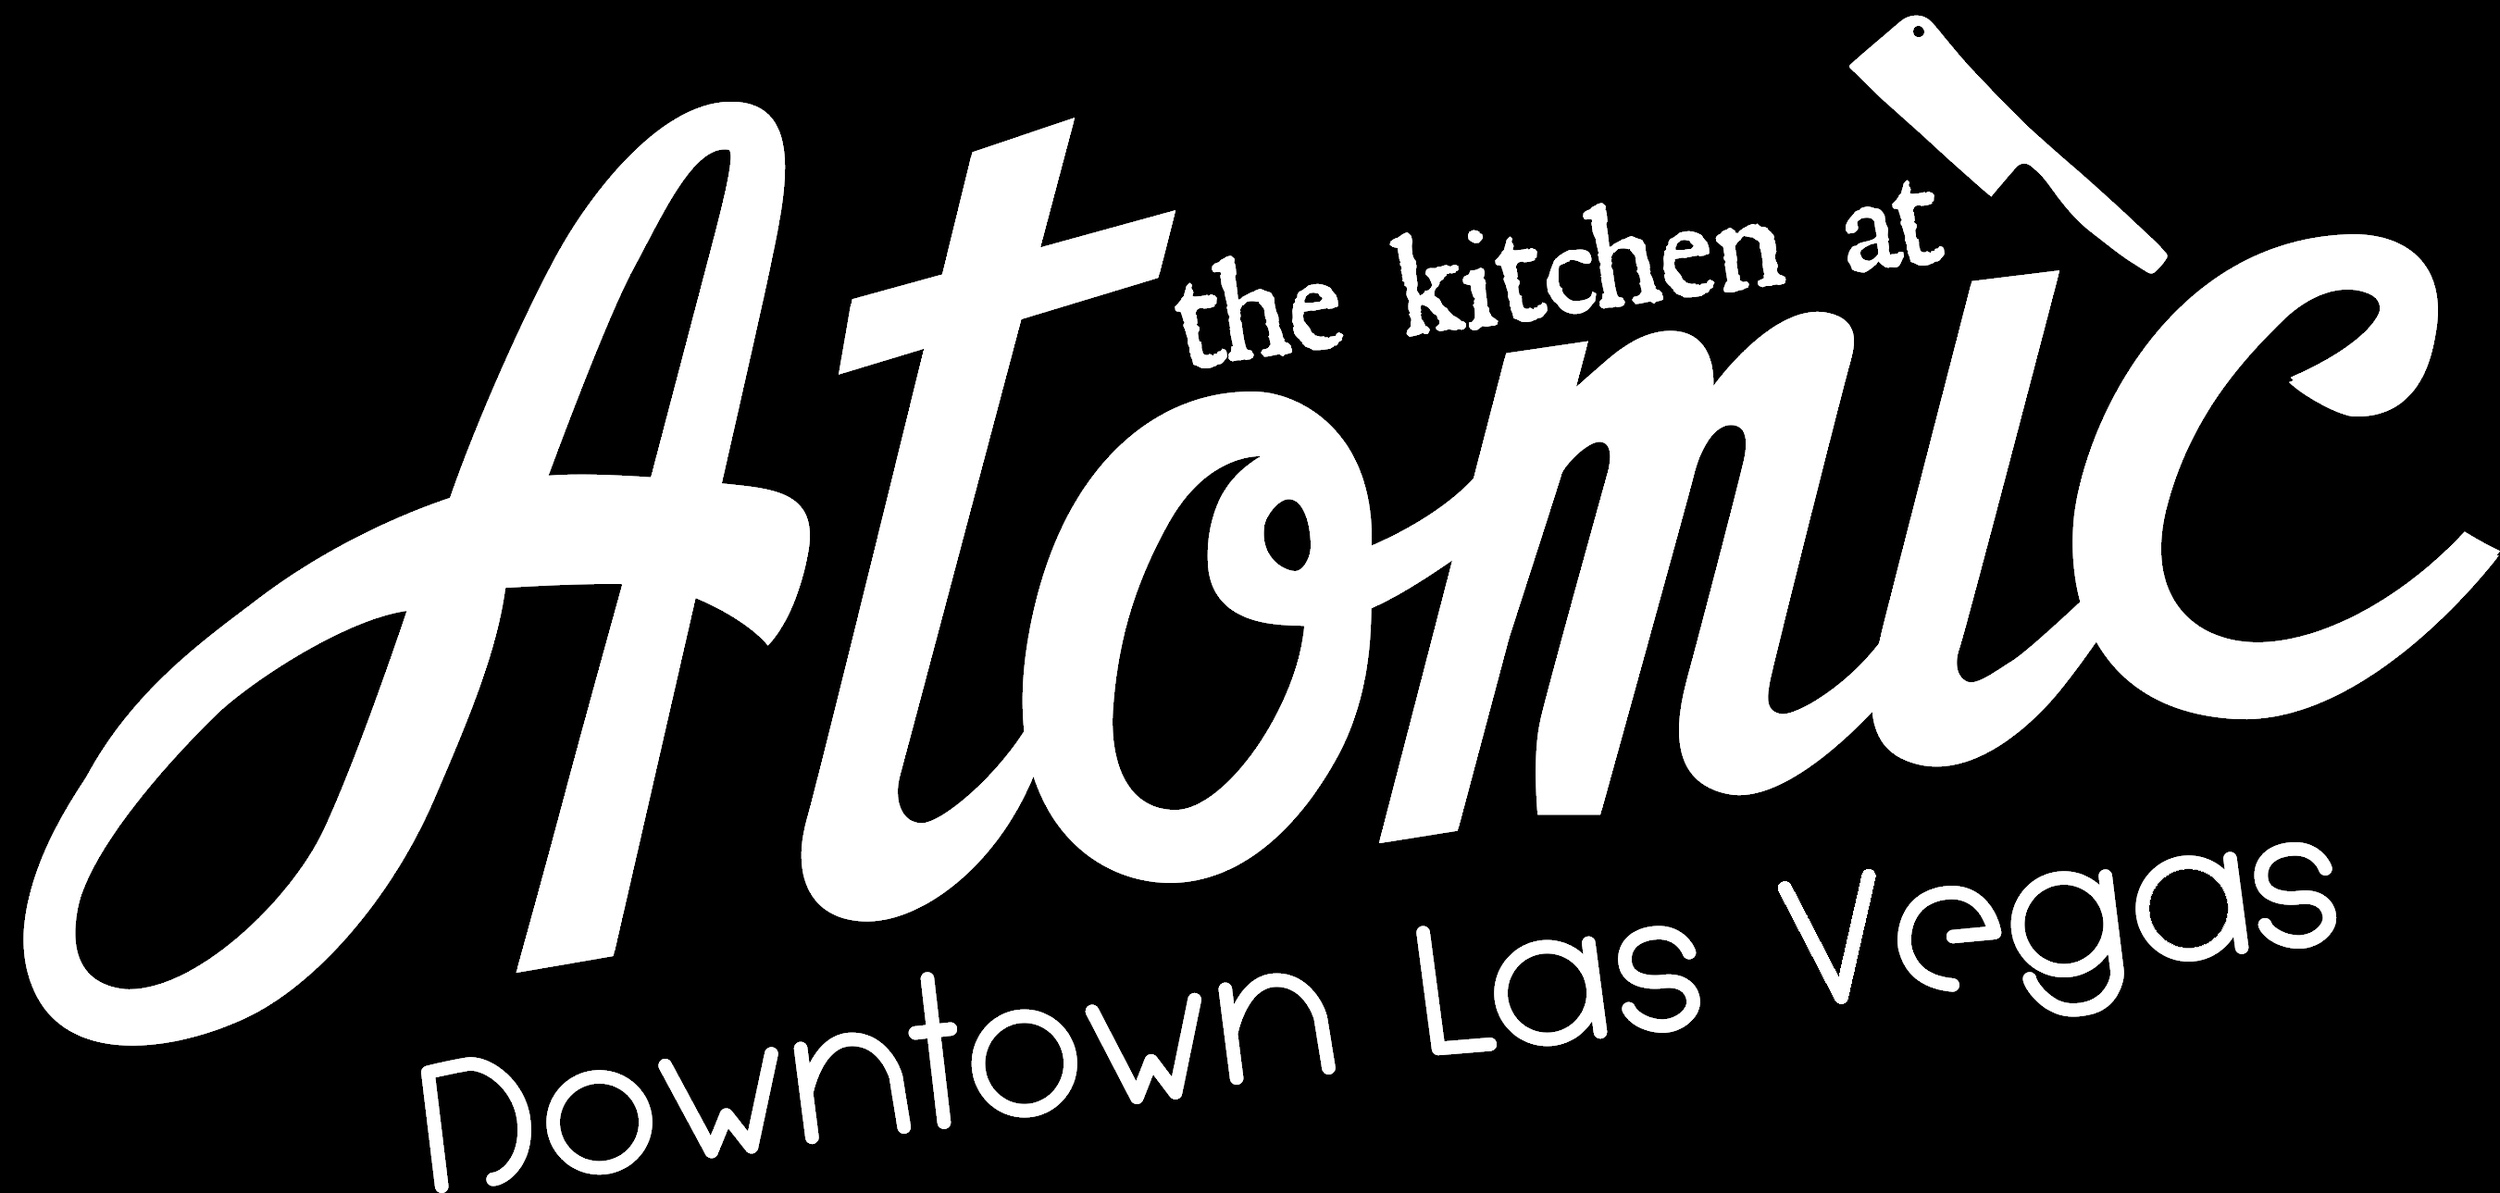 Atomic: Wed July 24 Only